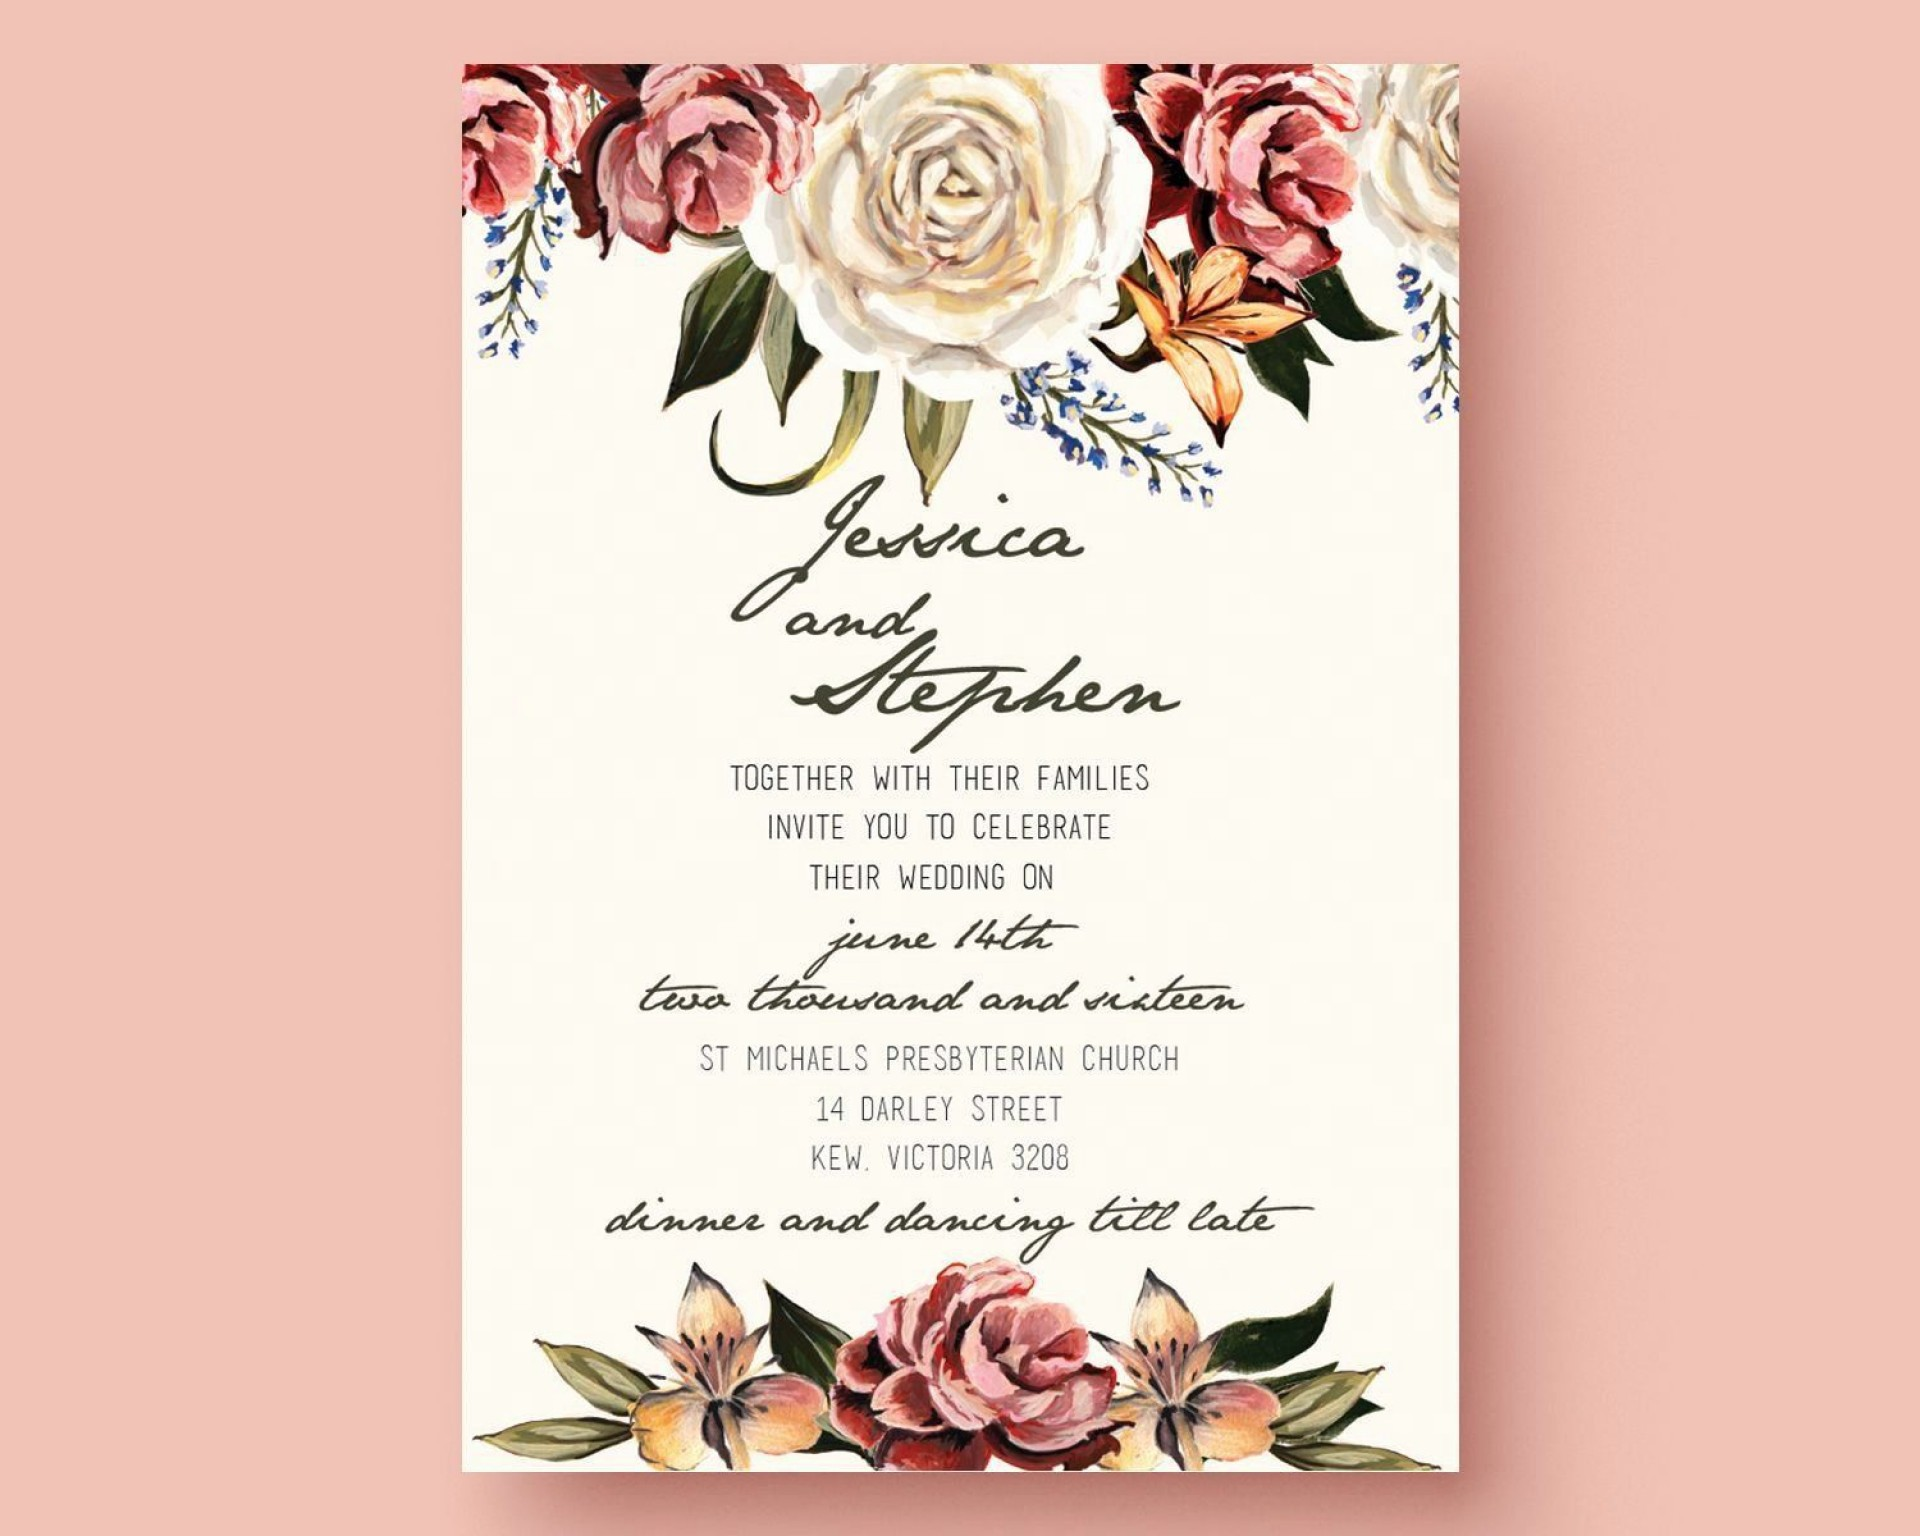 001 Unique Download Free Wedding Invitation Card Template Inspiration  Marriage Format Psd1920